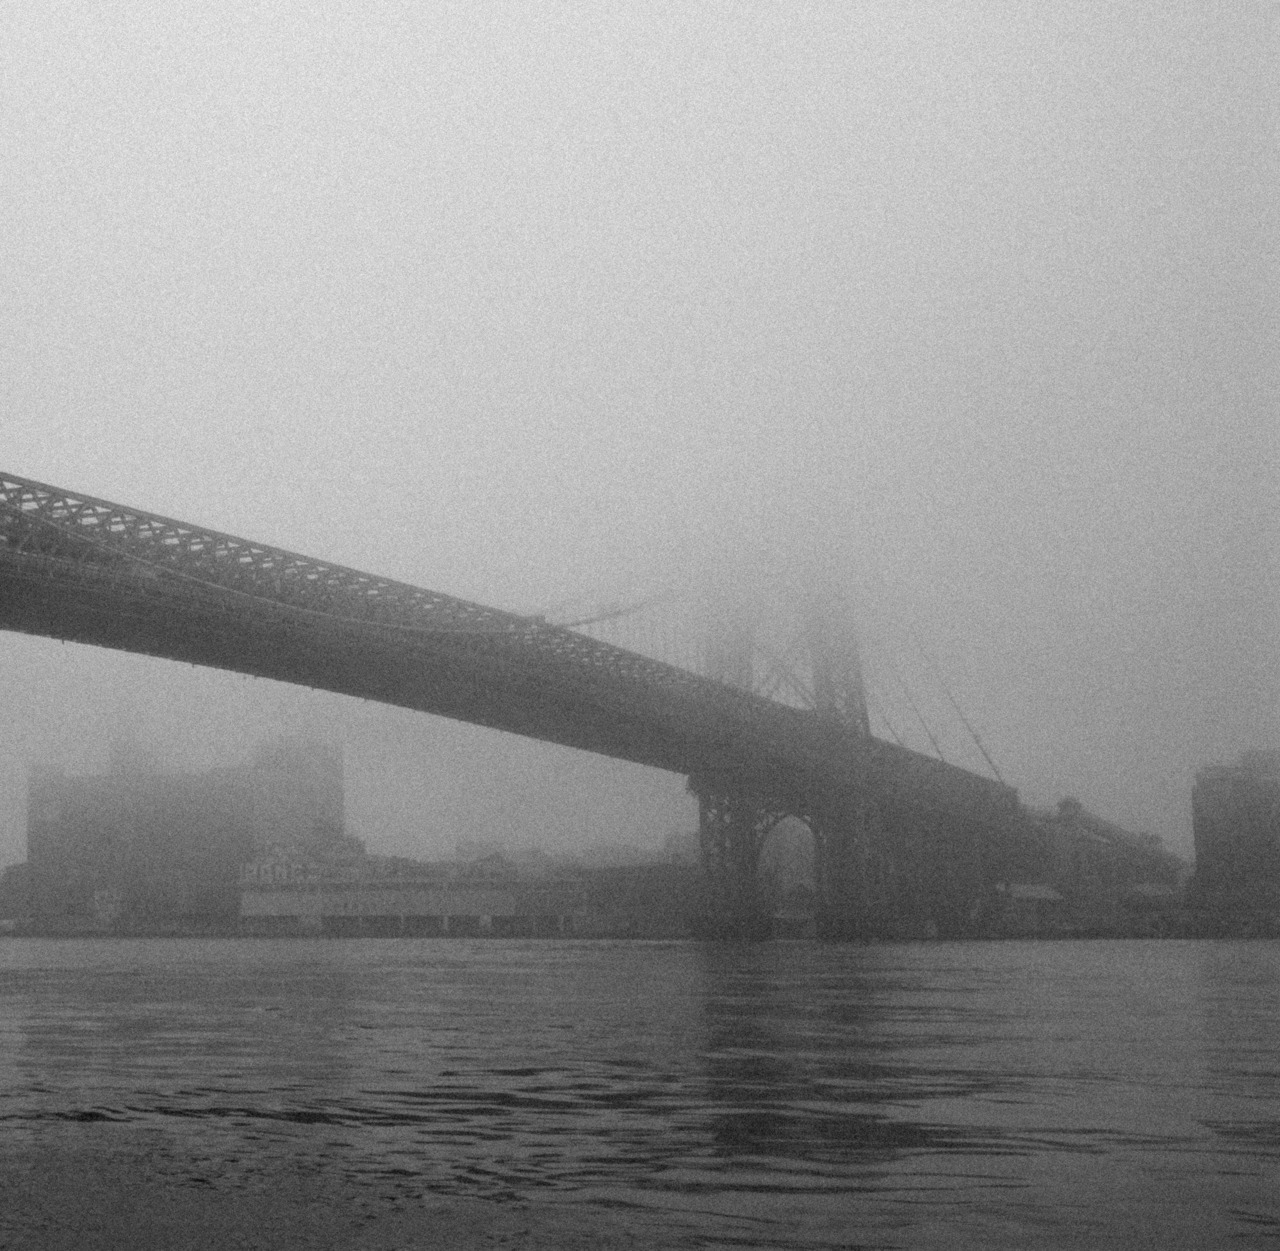 williamsburg bridge, nyc7:50am, 54°4 miles